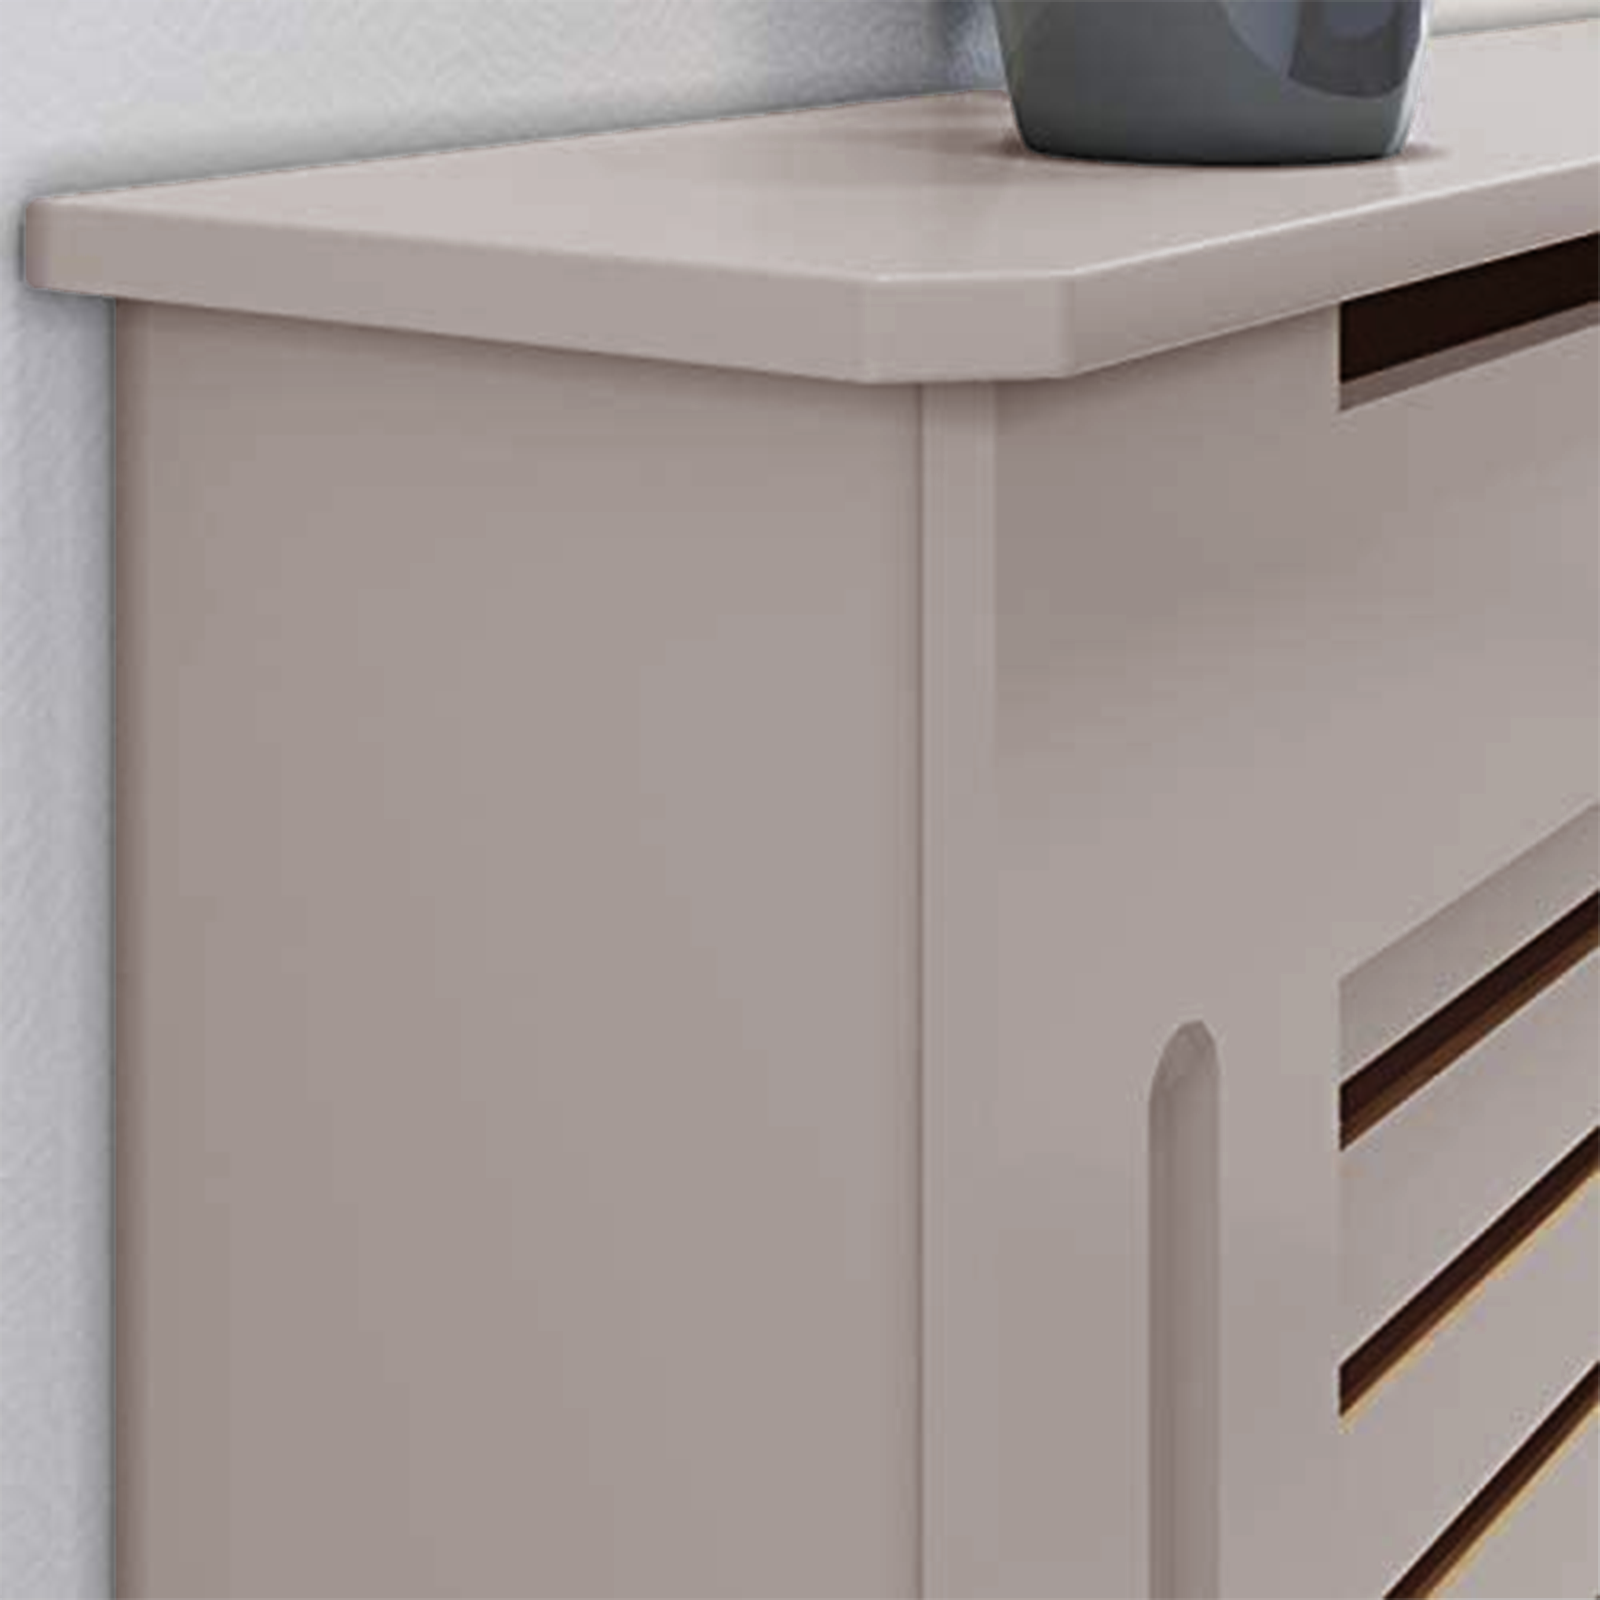 White-Radiator-Cover-Cabinet-Small-Large-Modern-MDF-Slat-Wood-Grill-Furniture miniatuur 52